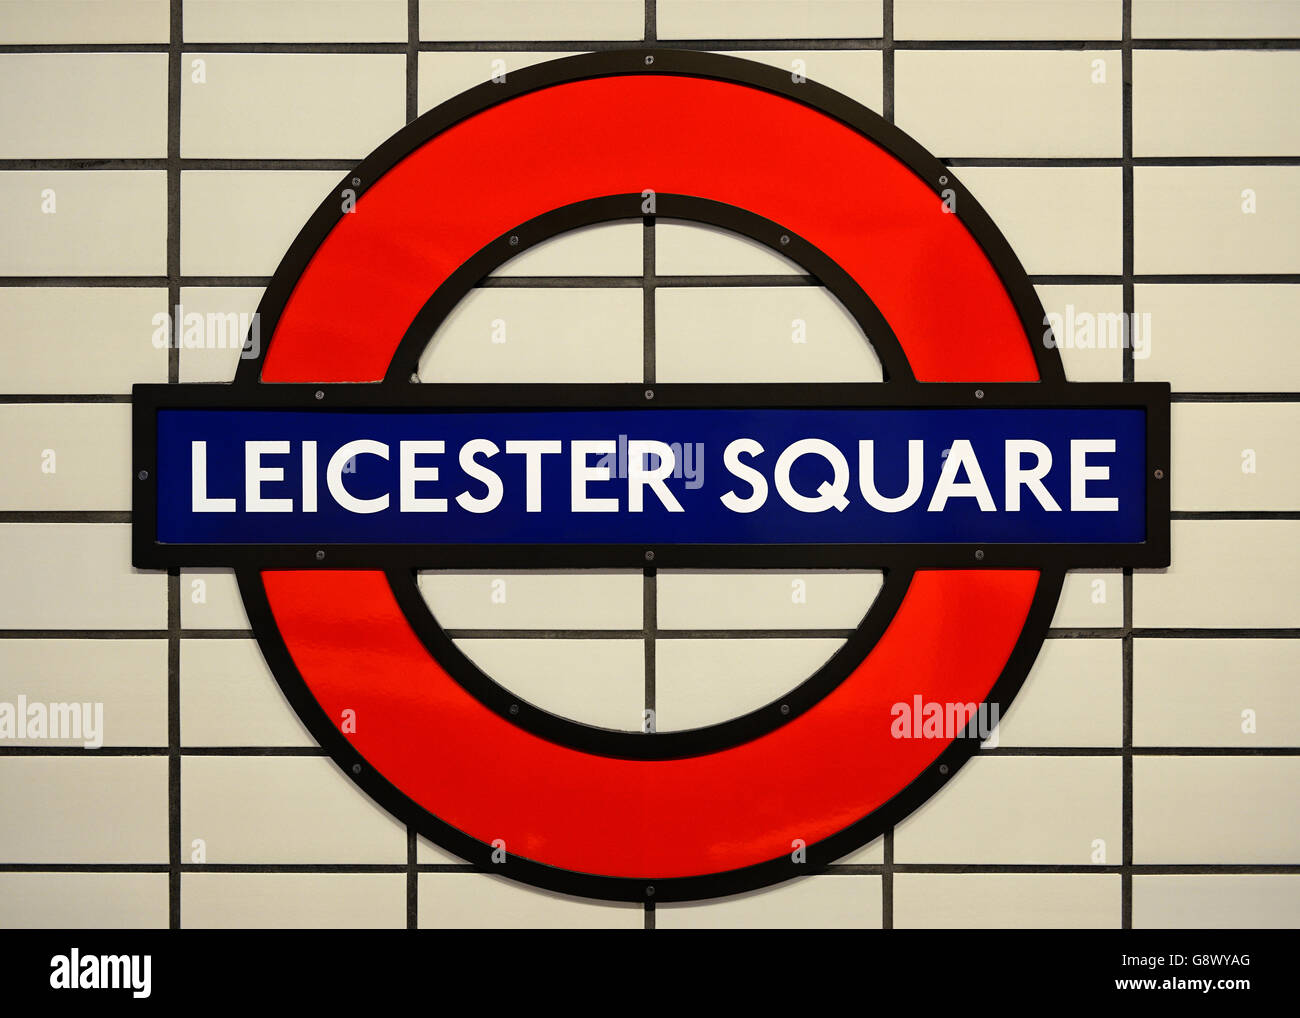 Leicester Square Underground Station Stock Photos Leicester Square